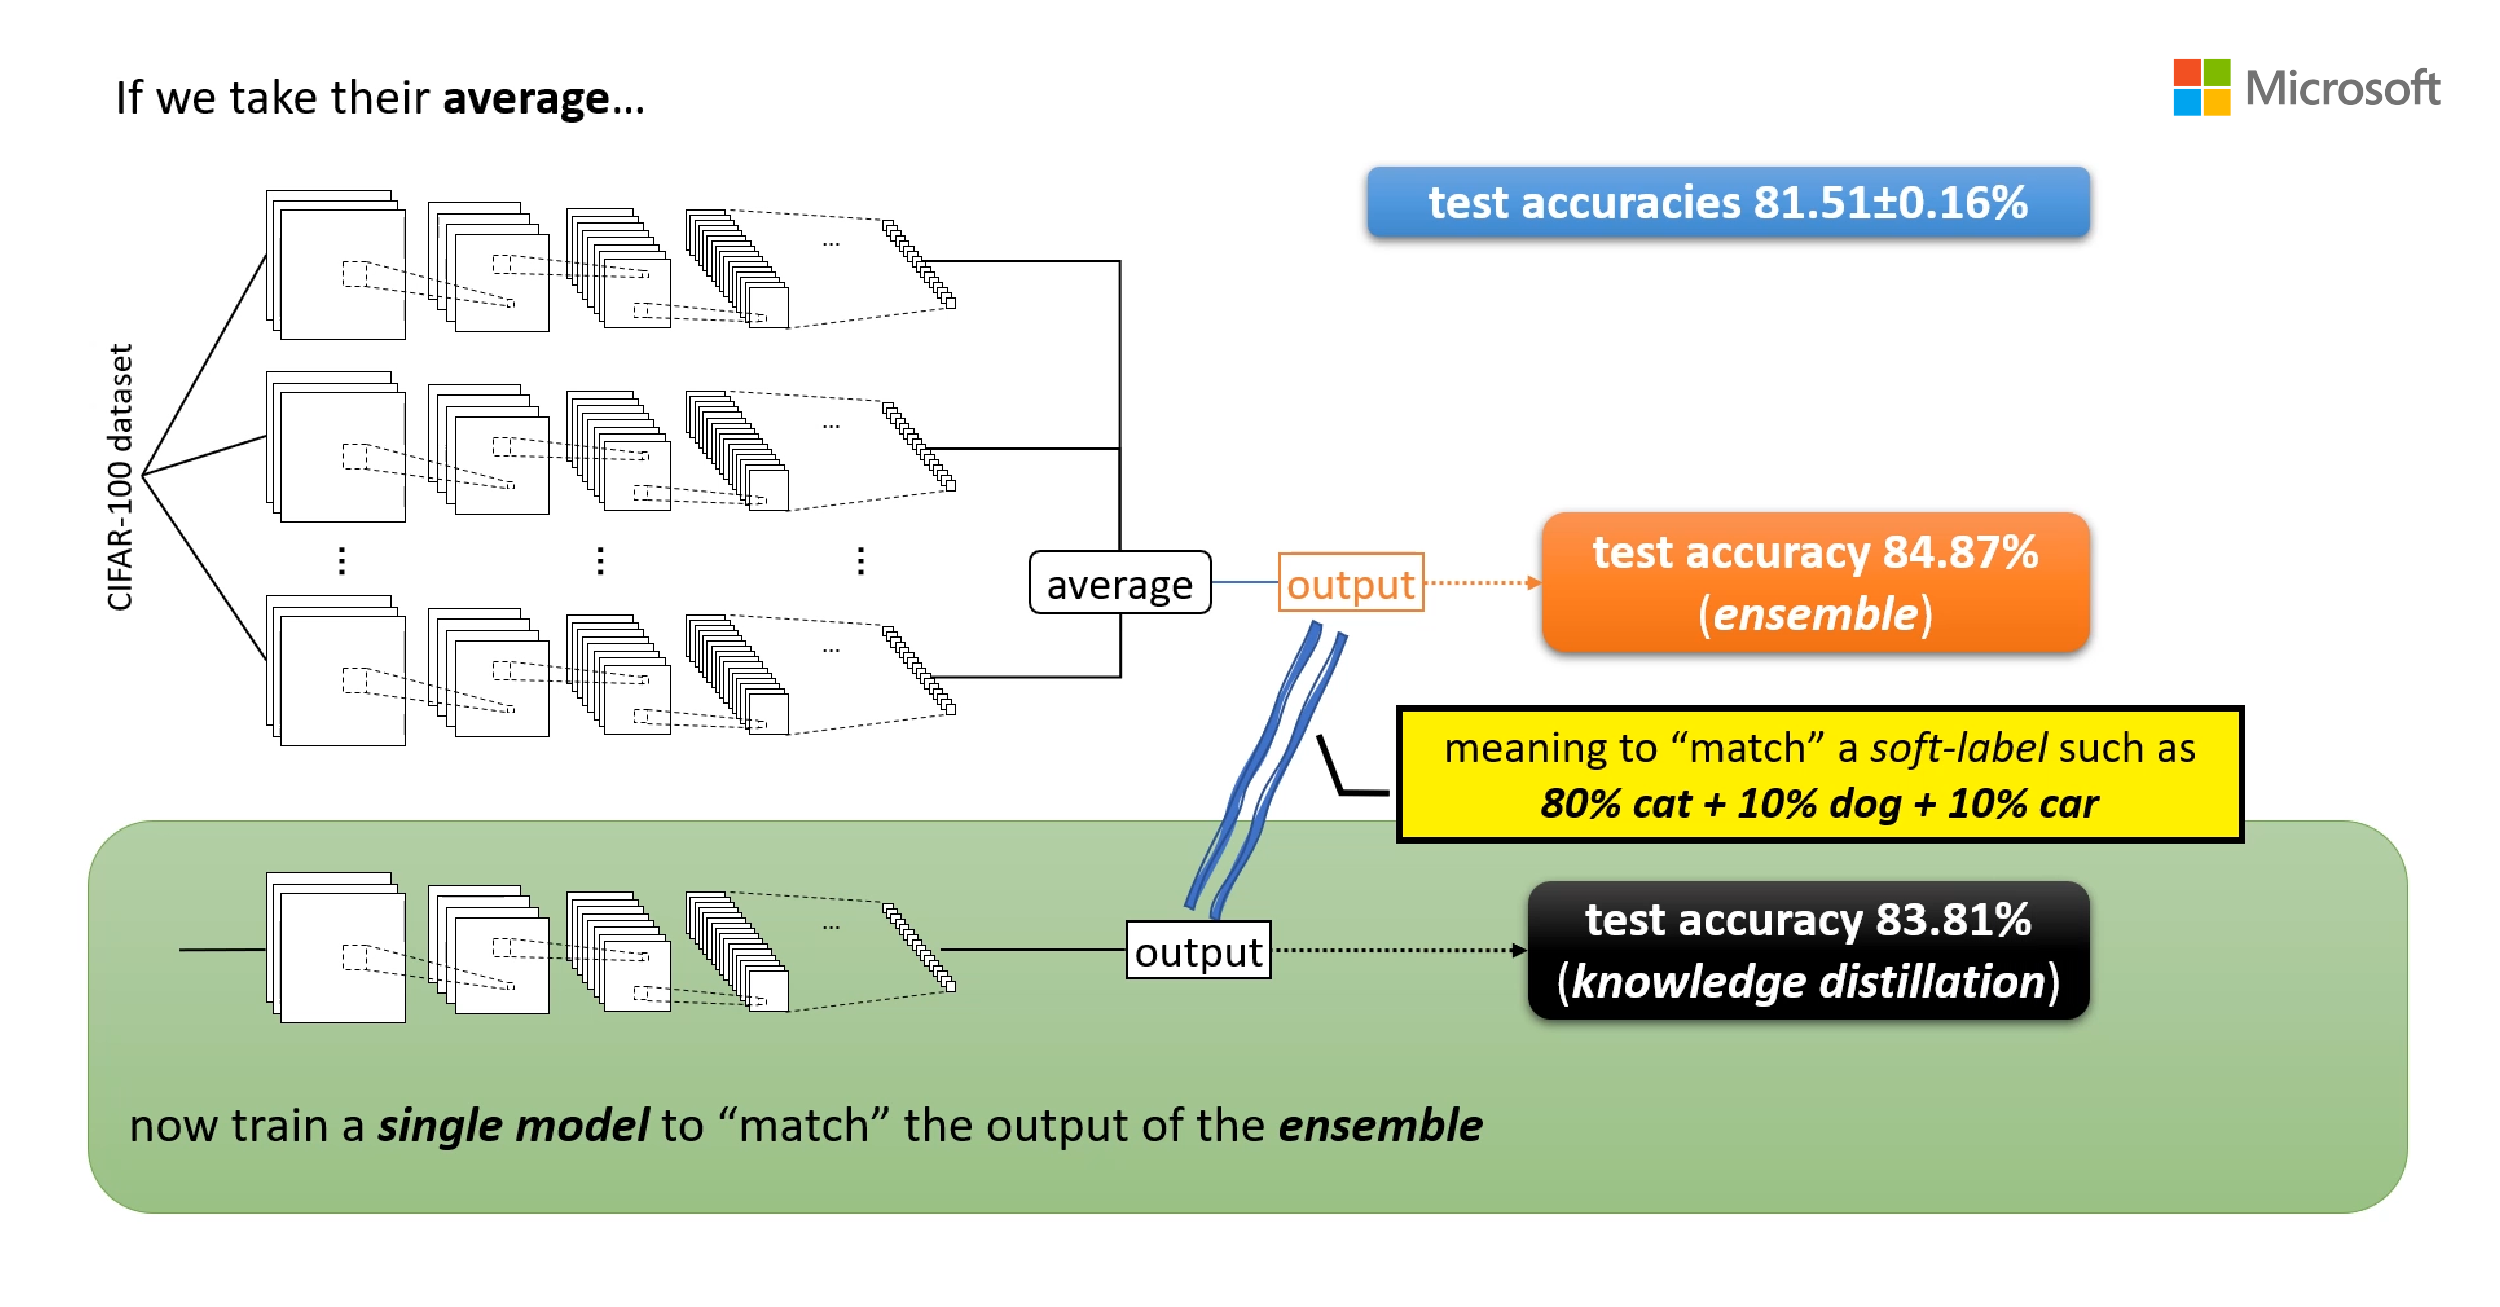 Three mysteries in deep learning: Ensemble, knowledge distillation, and self-distillation